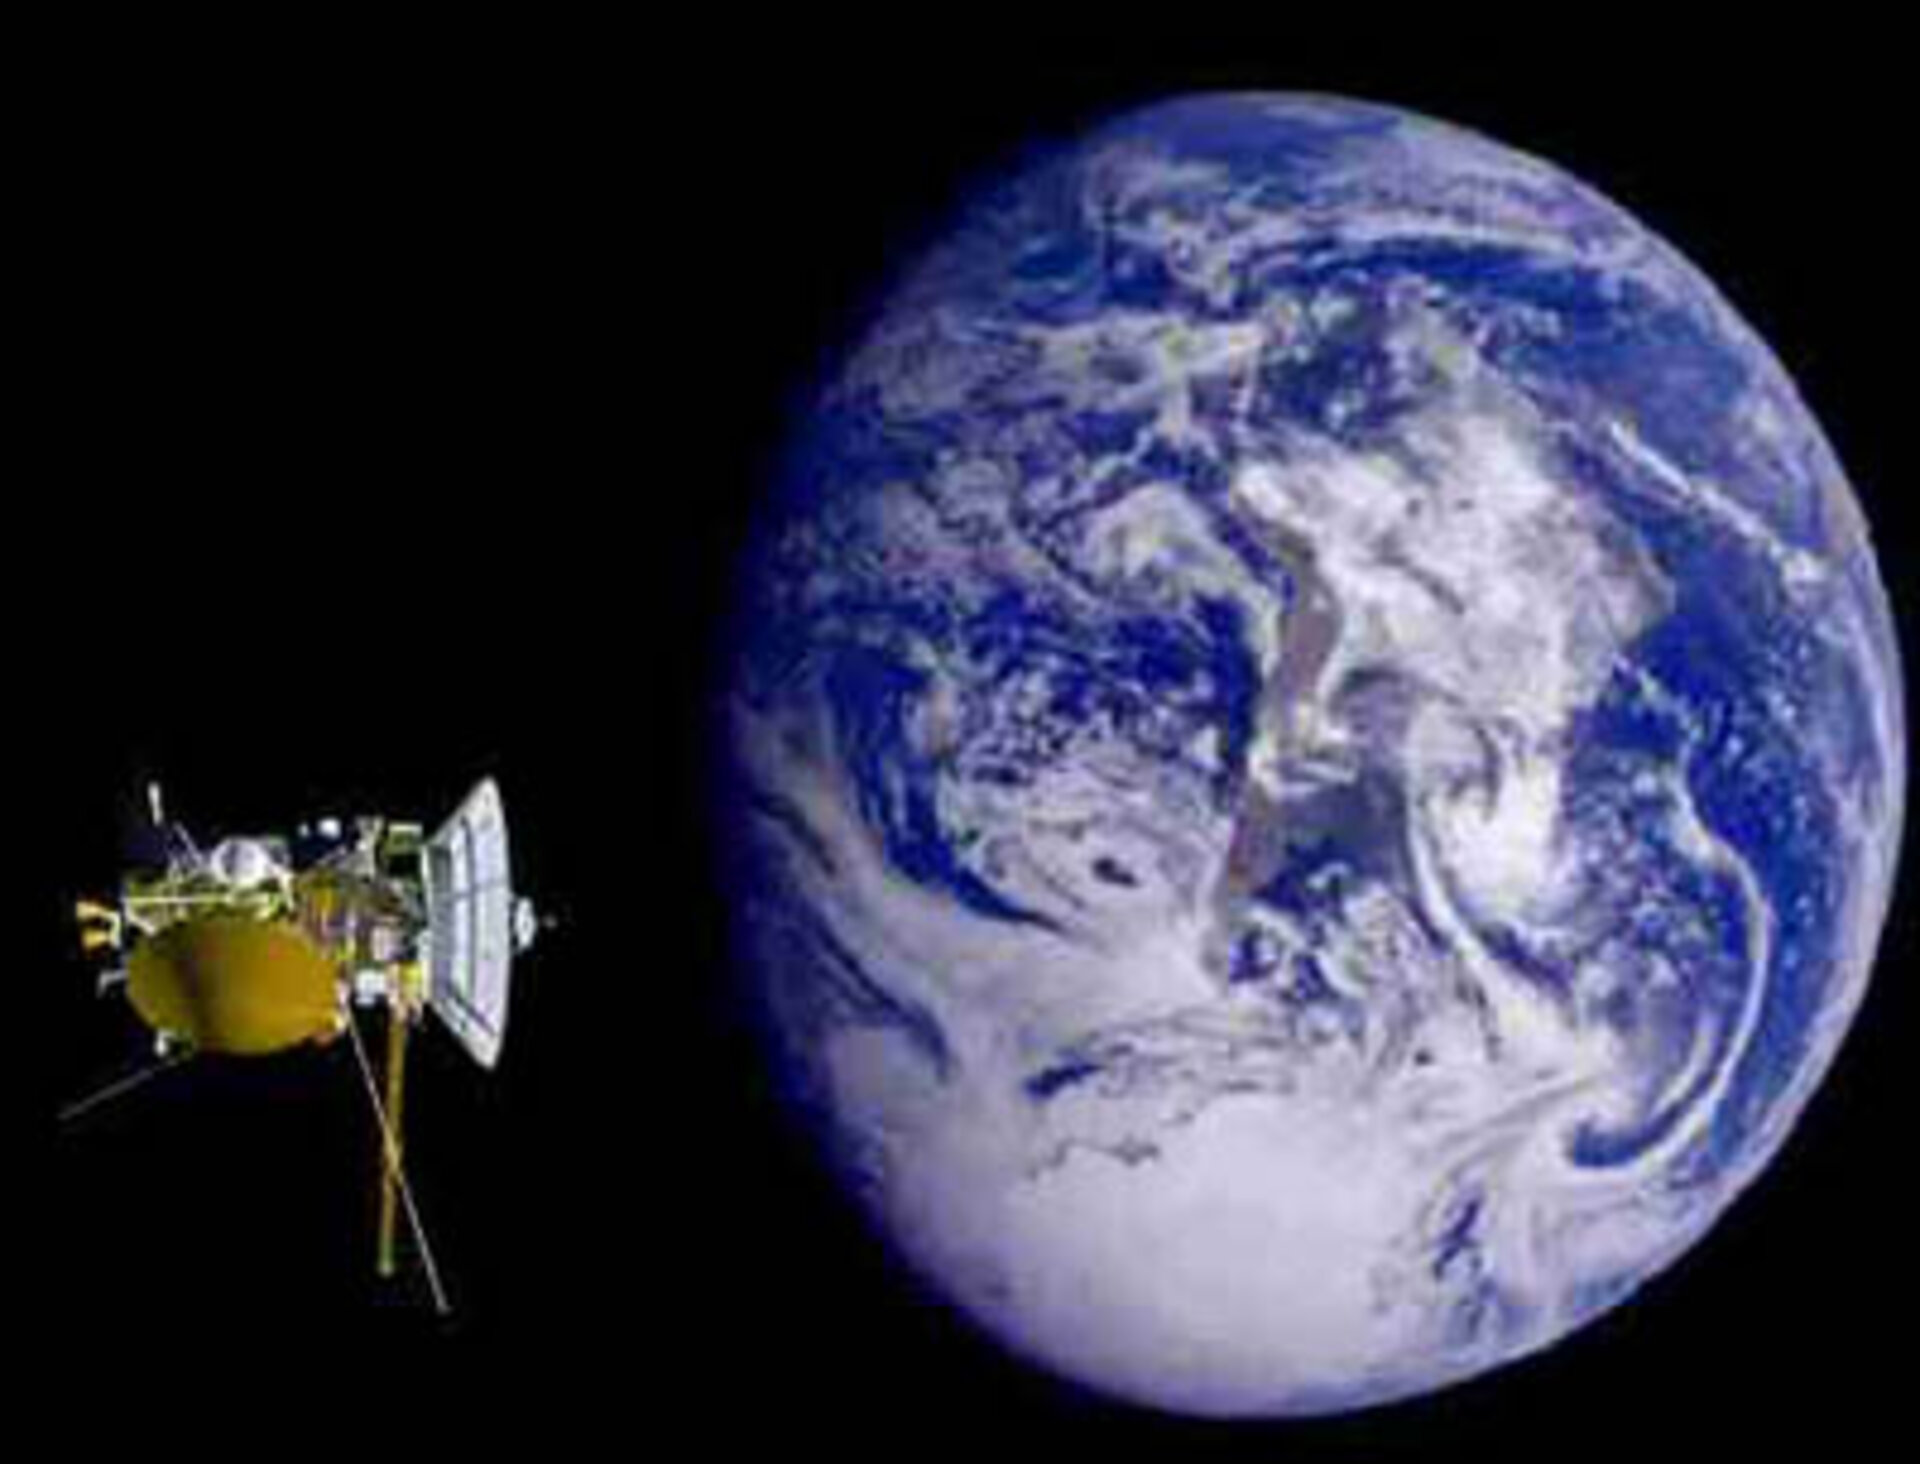 ESA/NASA Cassini-Huygens swings by Earth 1999, slowing unexpectedly